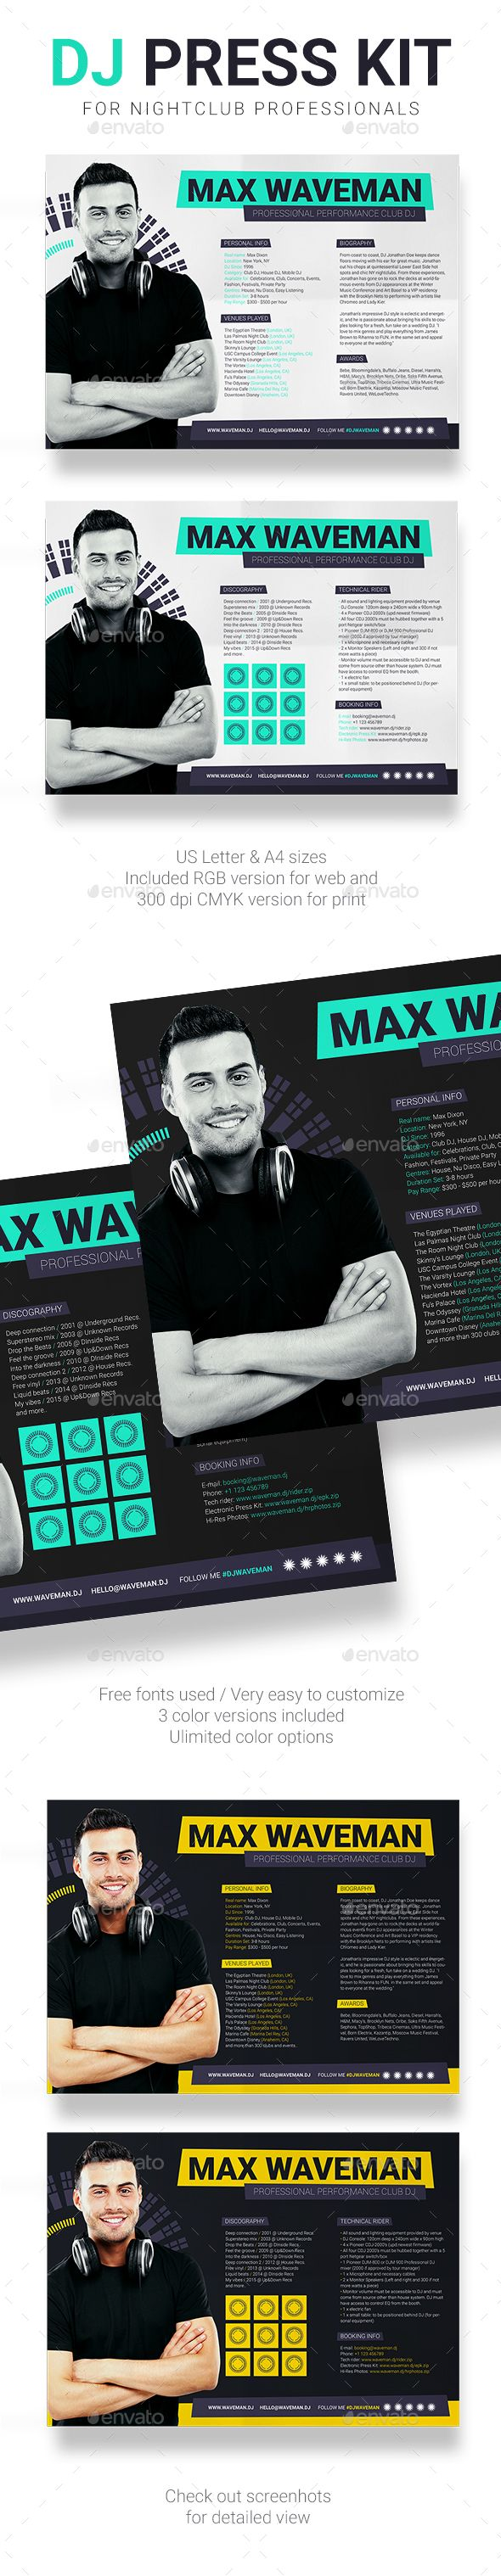 Prodj dj press kit rider resume psd template for Dj press kit template free